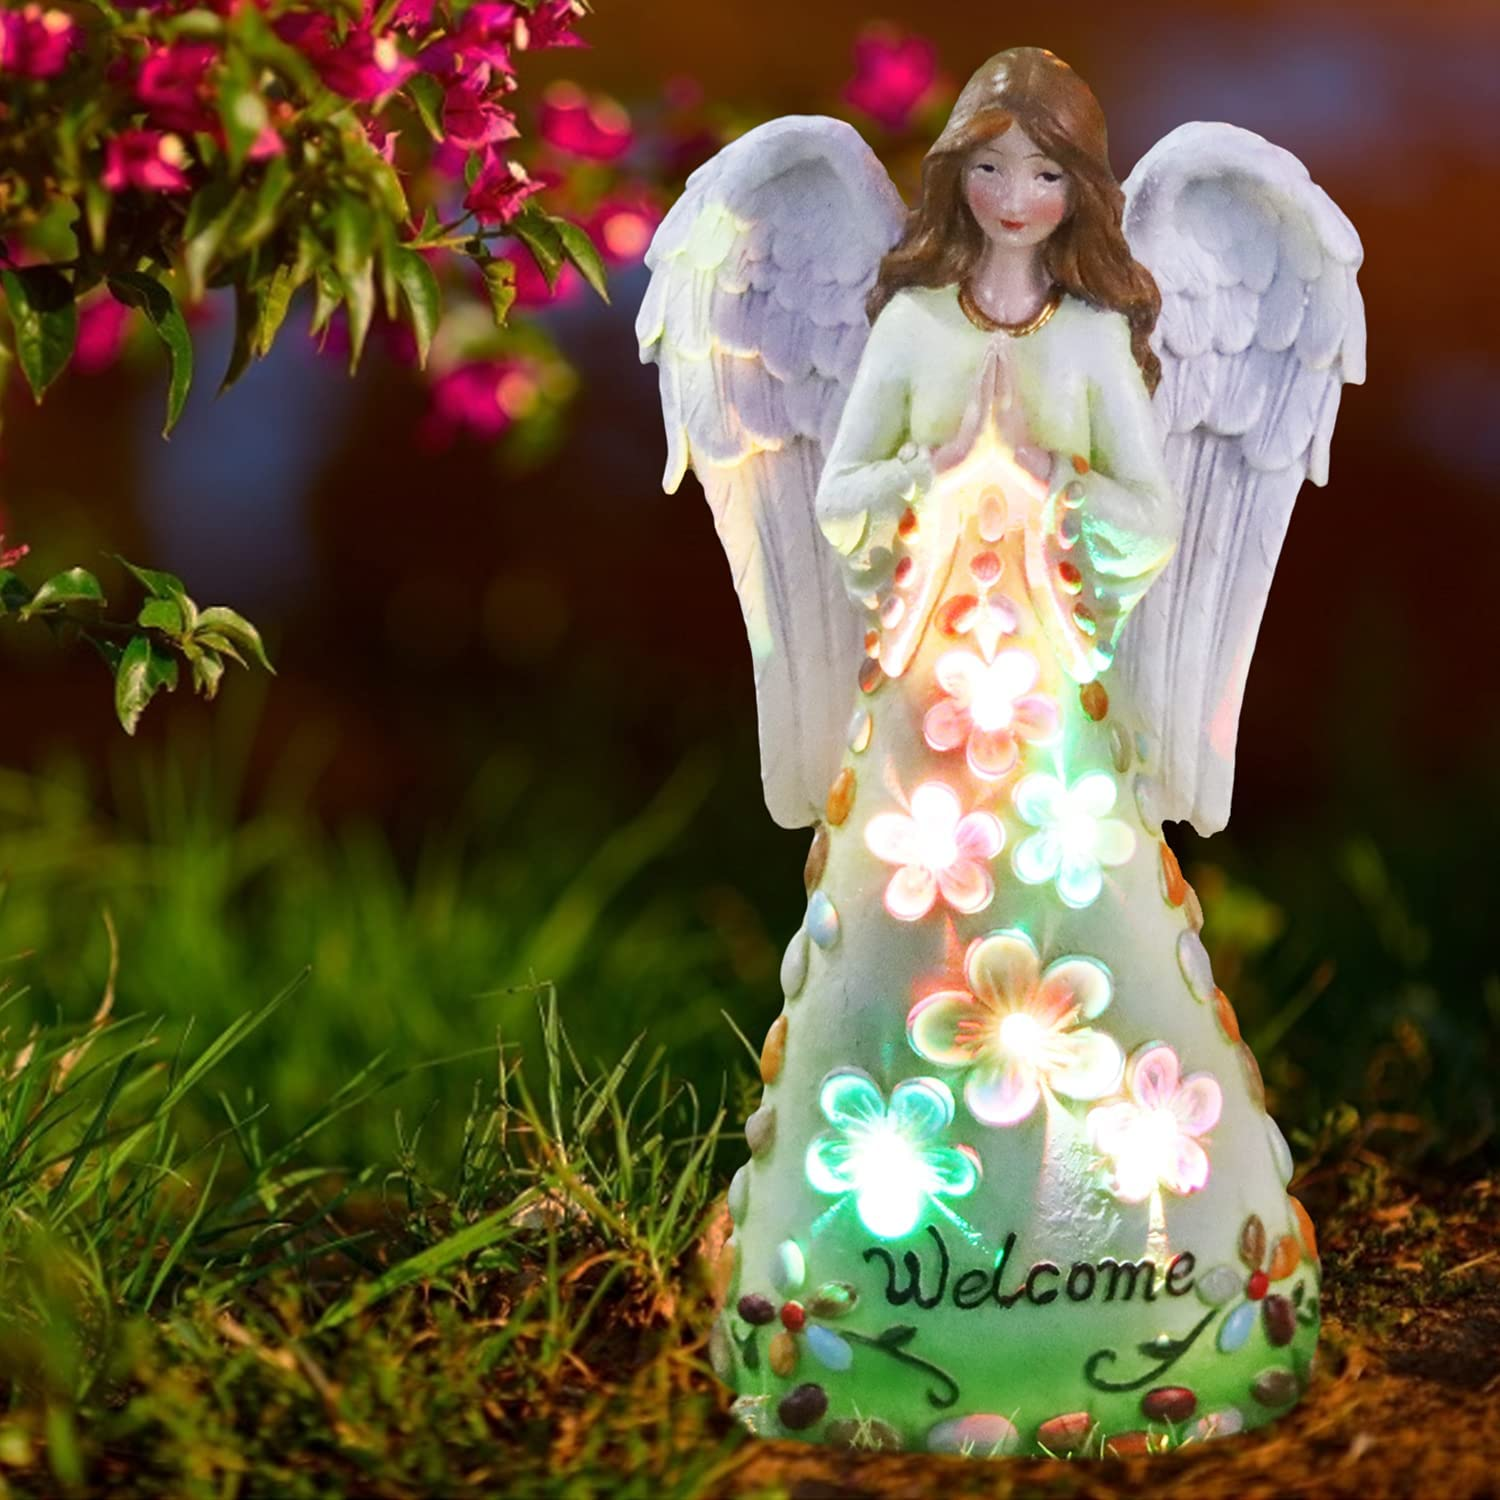 Solar Garden Light Outdoor Angel with Changing Challenge the lowest price of Purchase Japan ☆ Colour L Statues